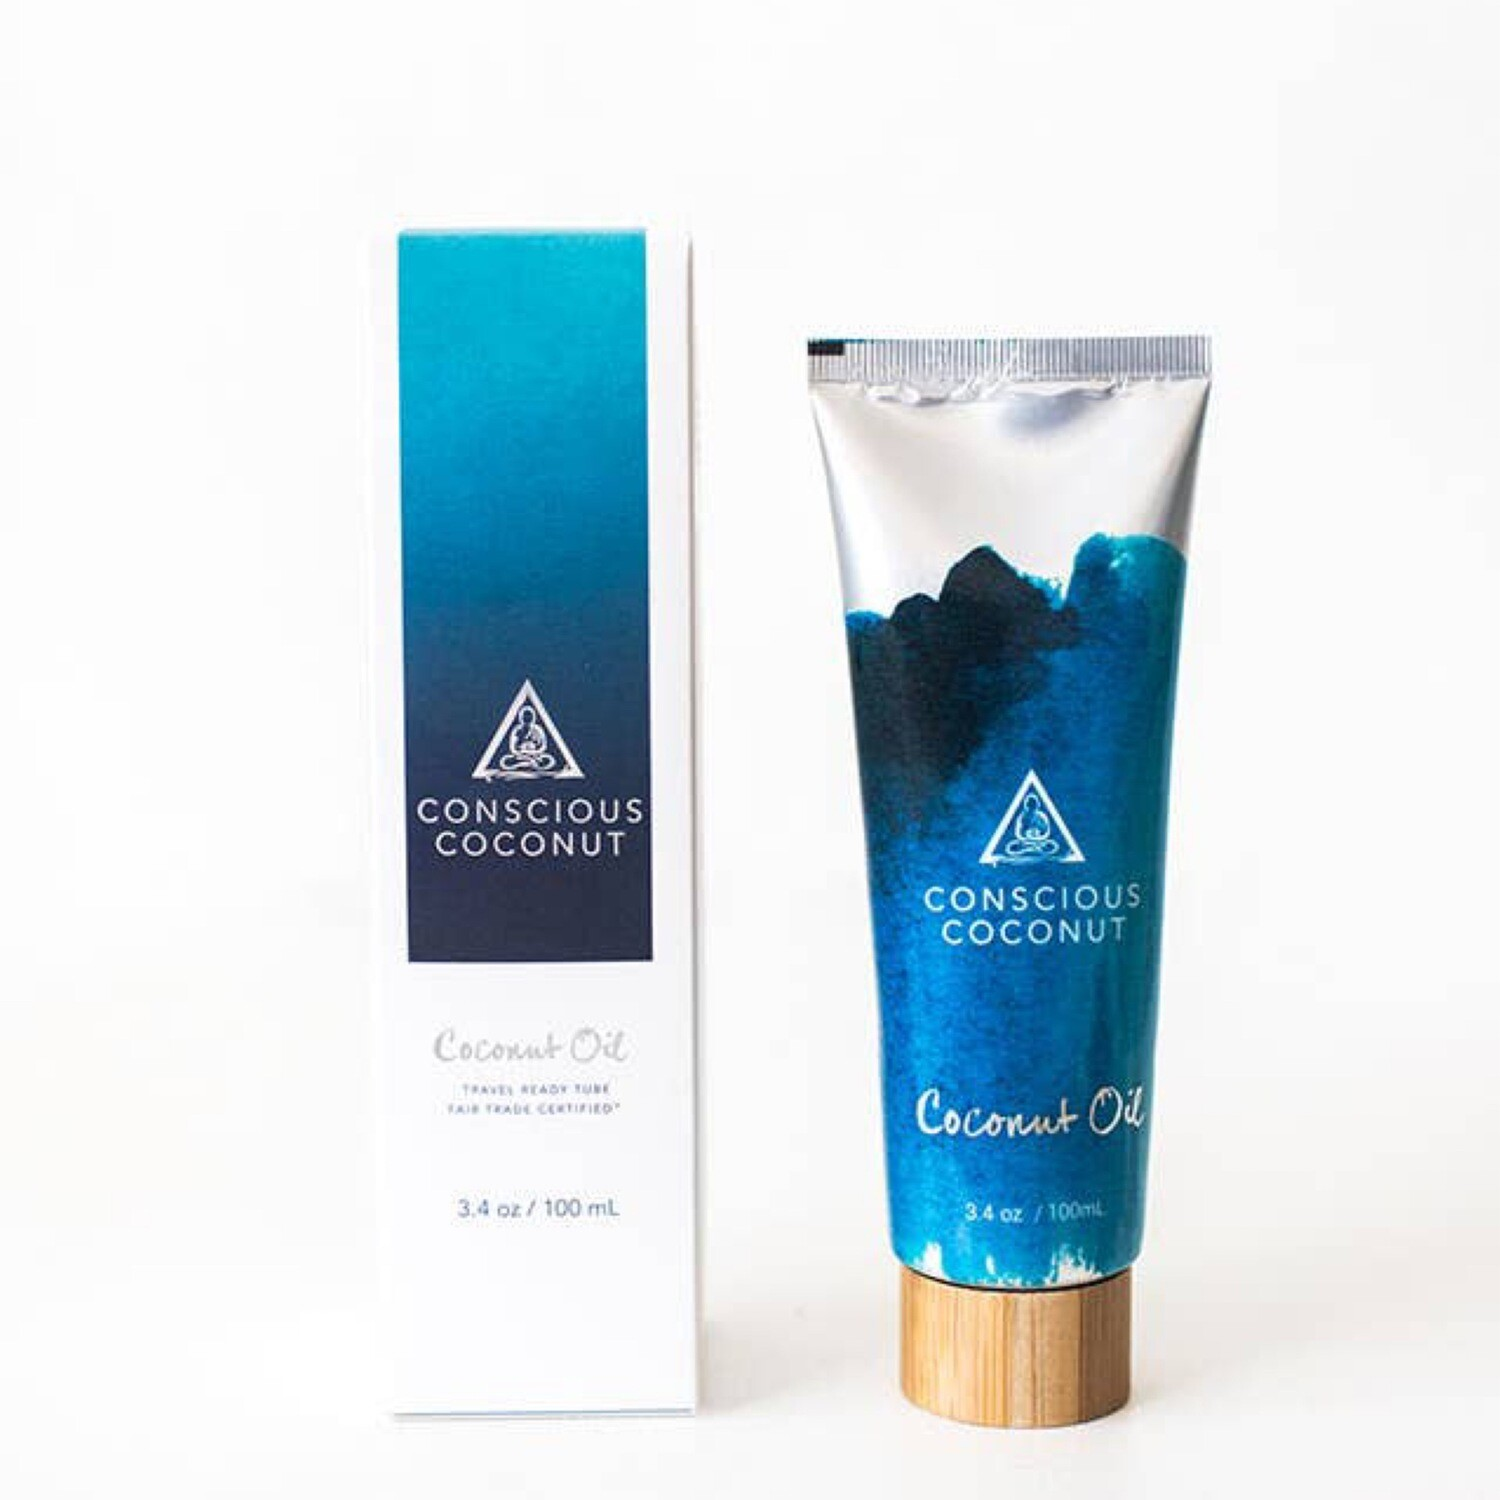 COCONUT OIL TUBE by Conscious Coconut